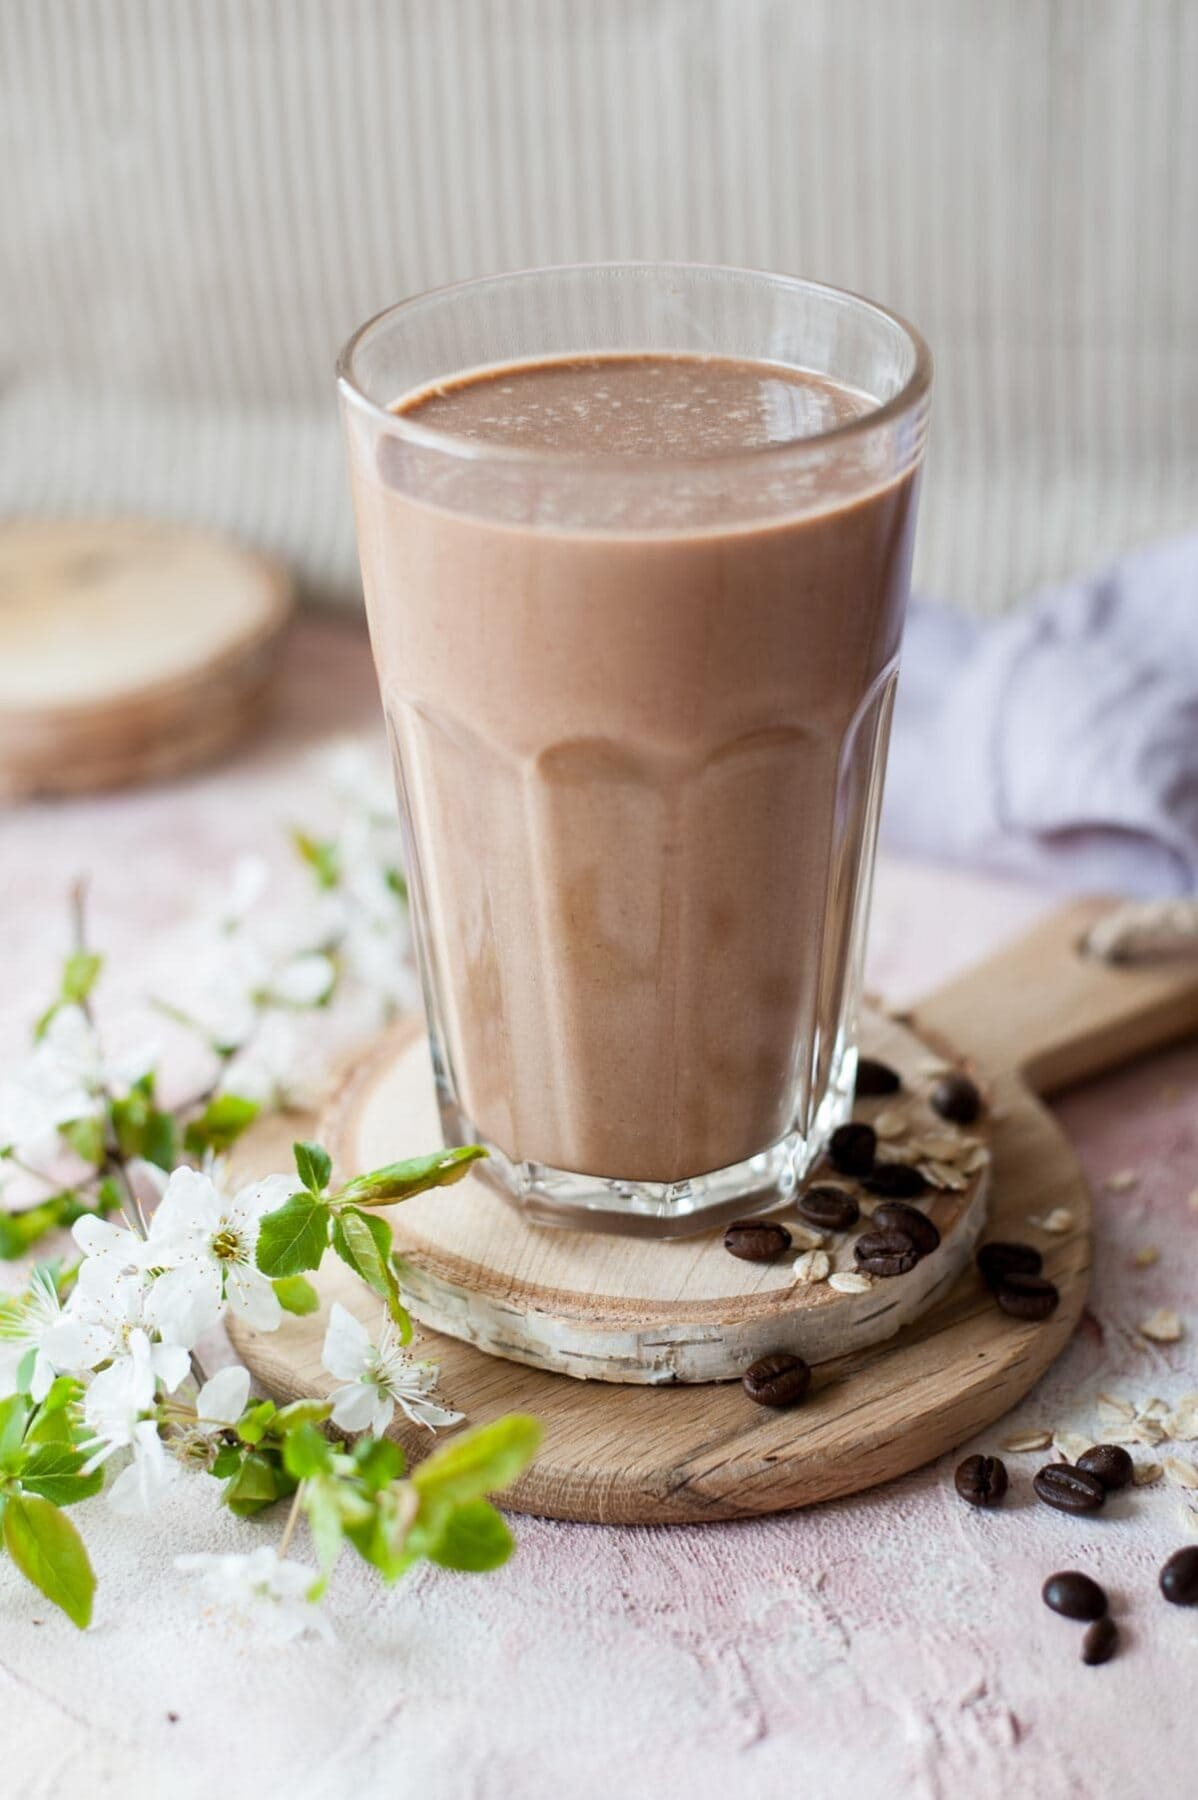 Coffee banana smoothie in a glas. Branch with flowers and coffee beans in the background.